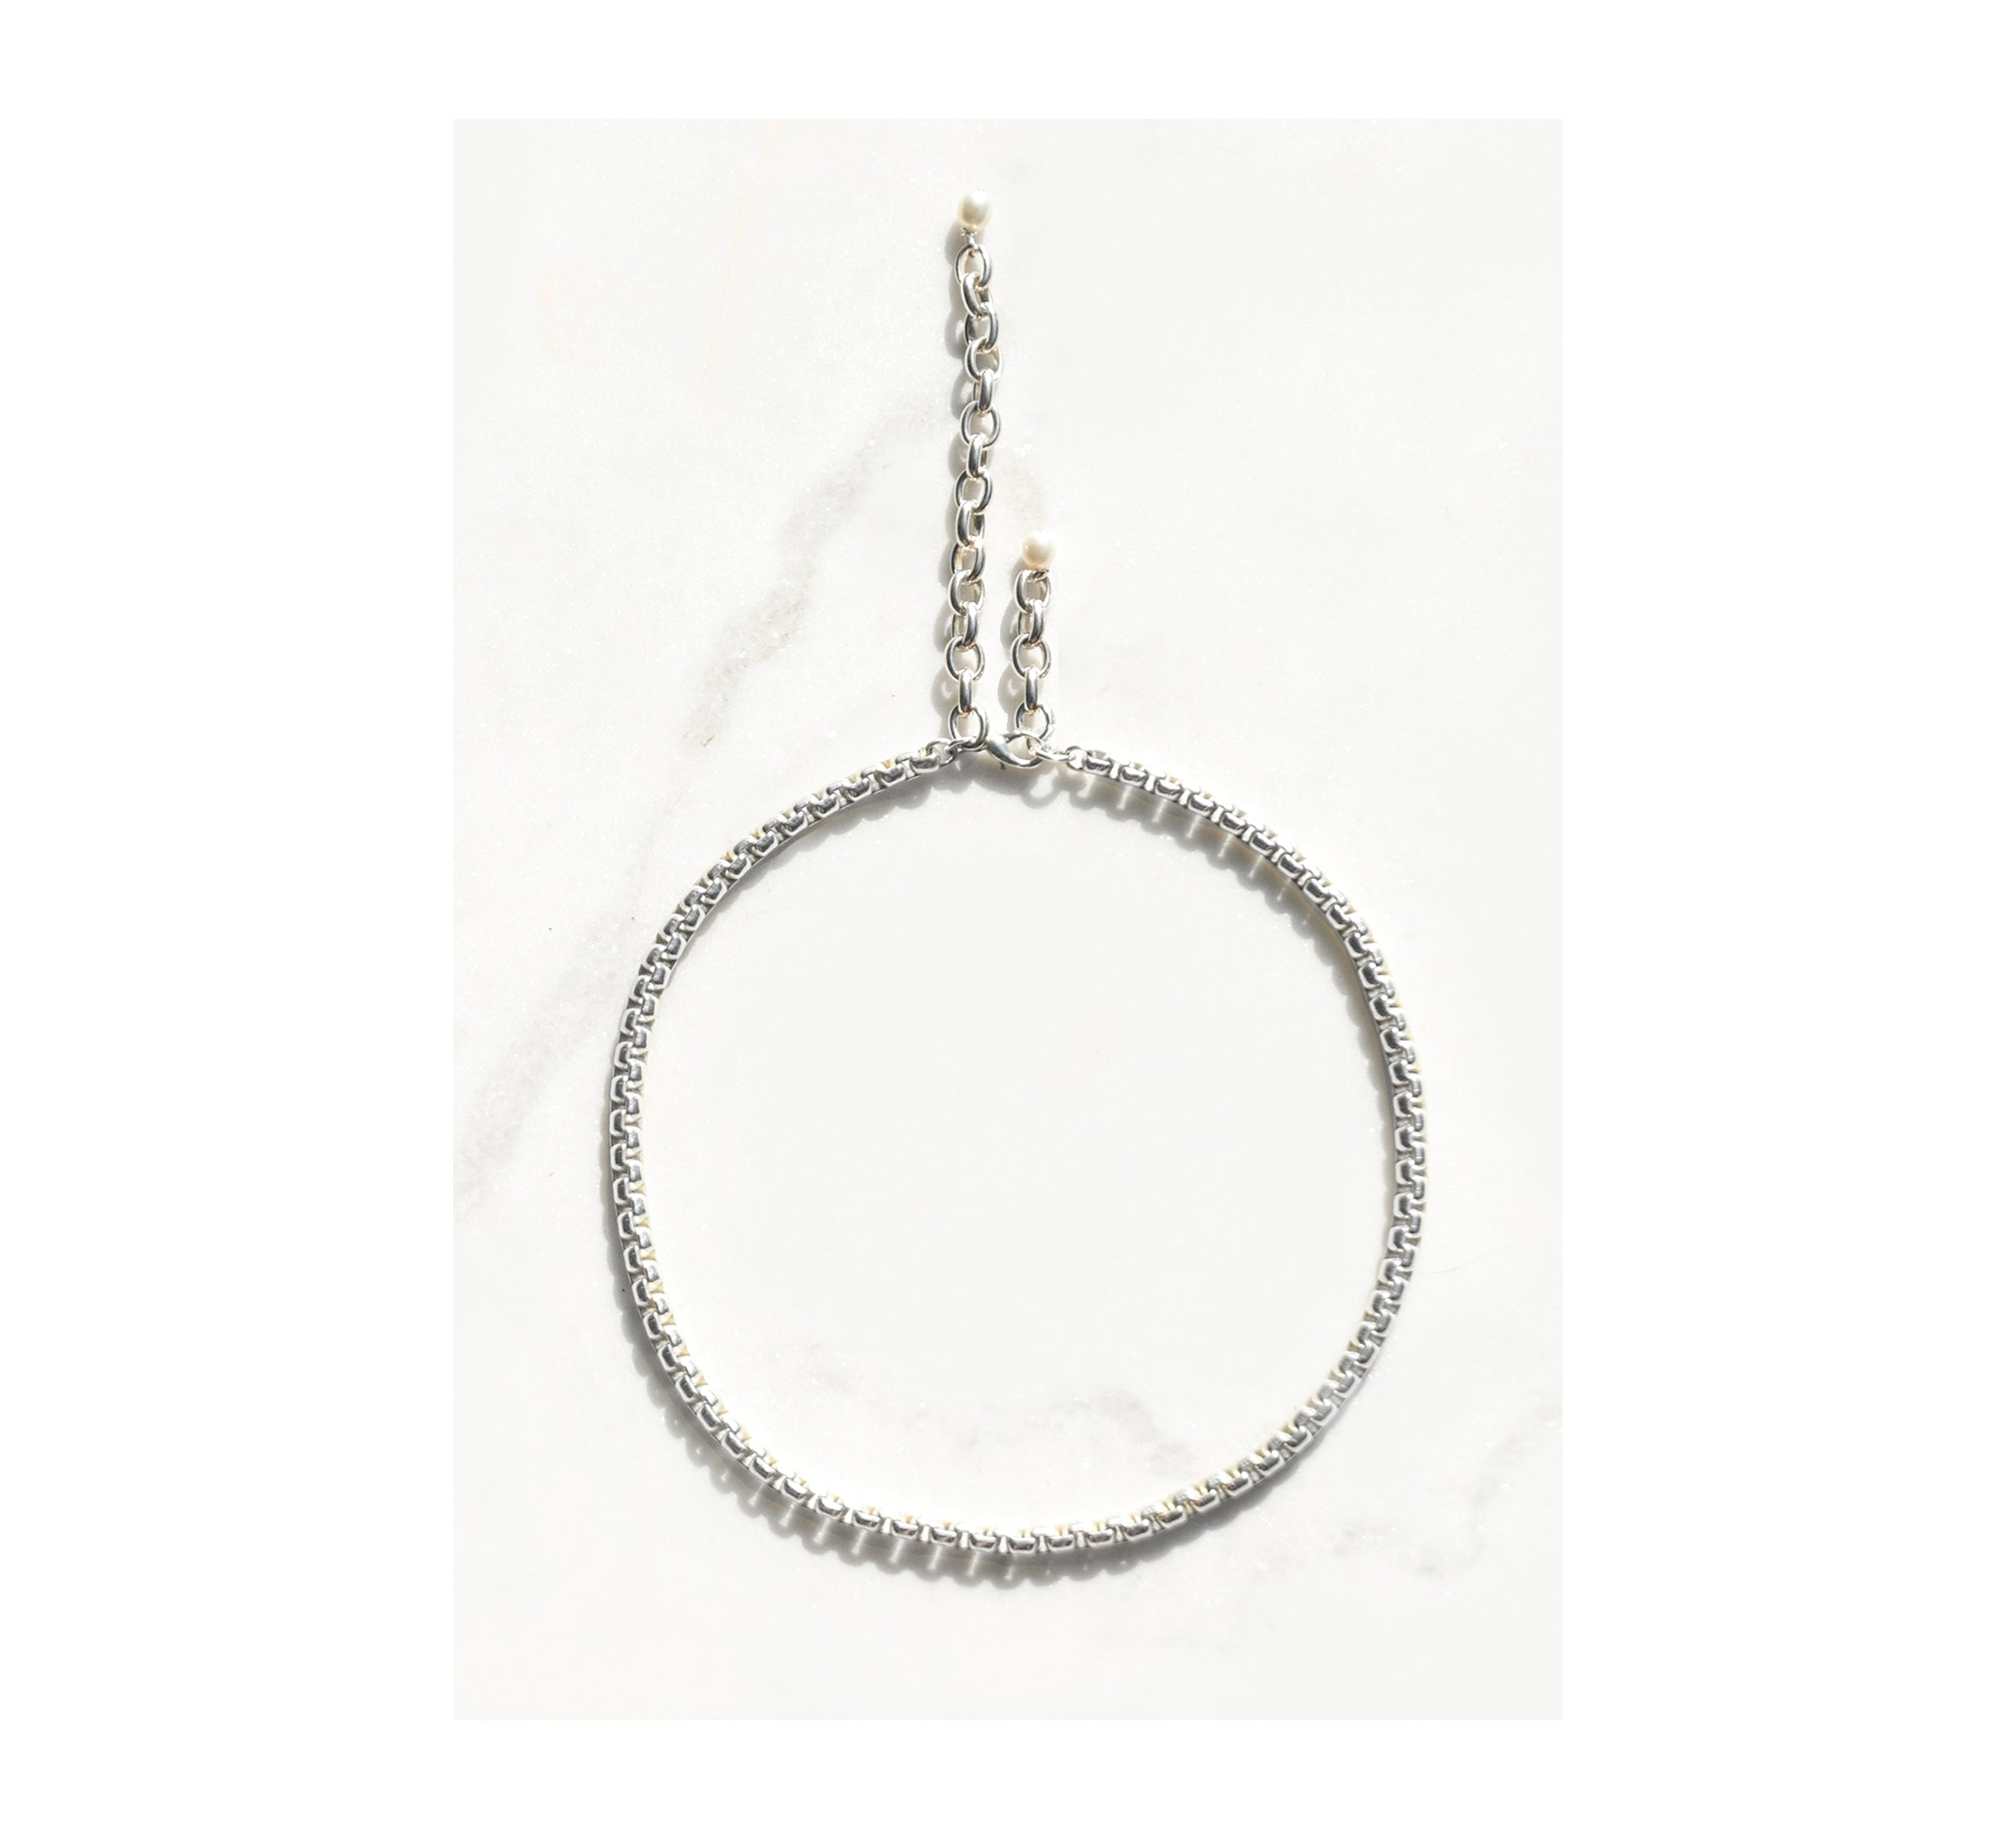 Arrola 925 Silver Necklace